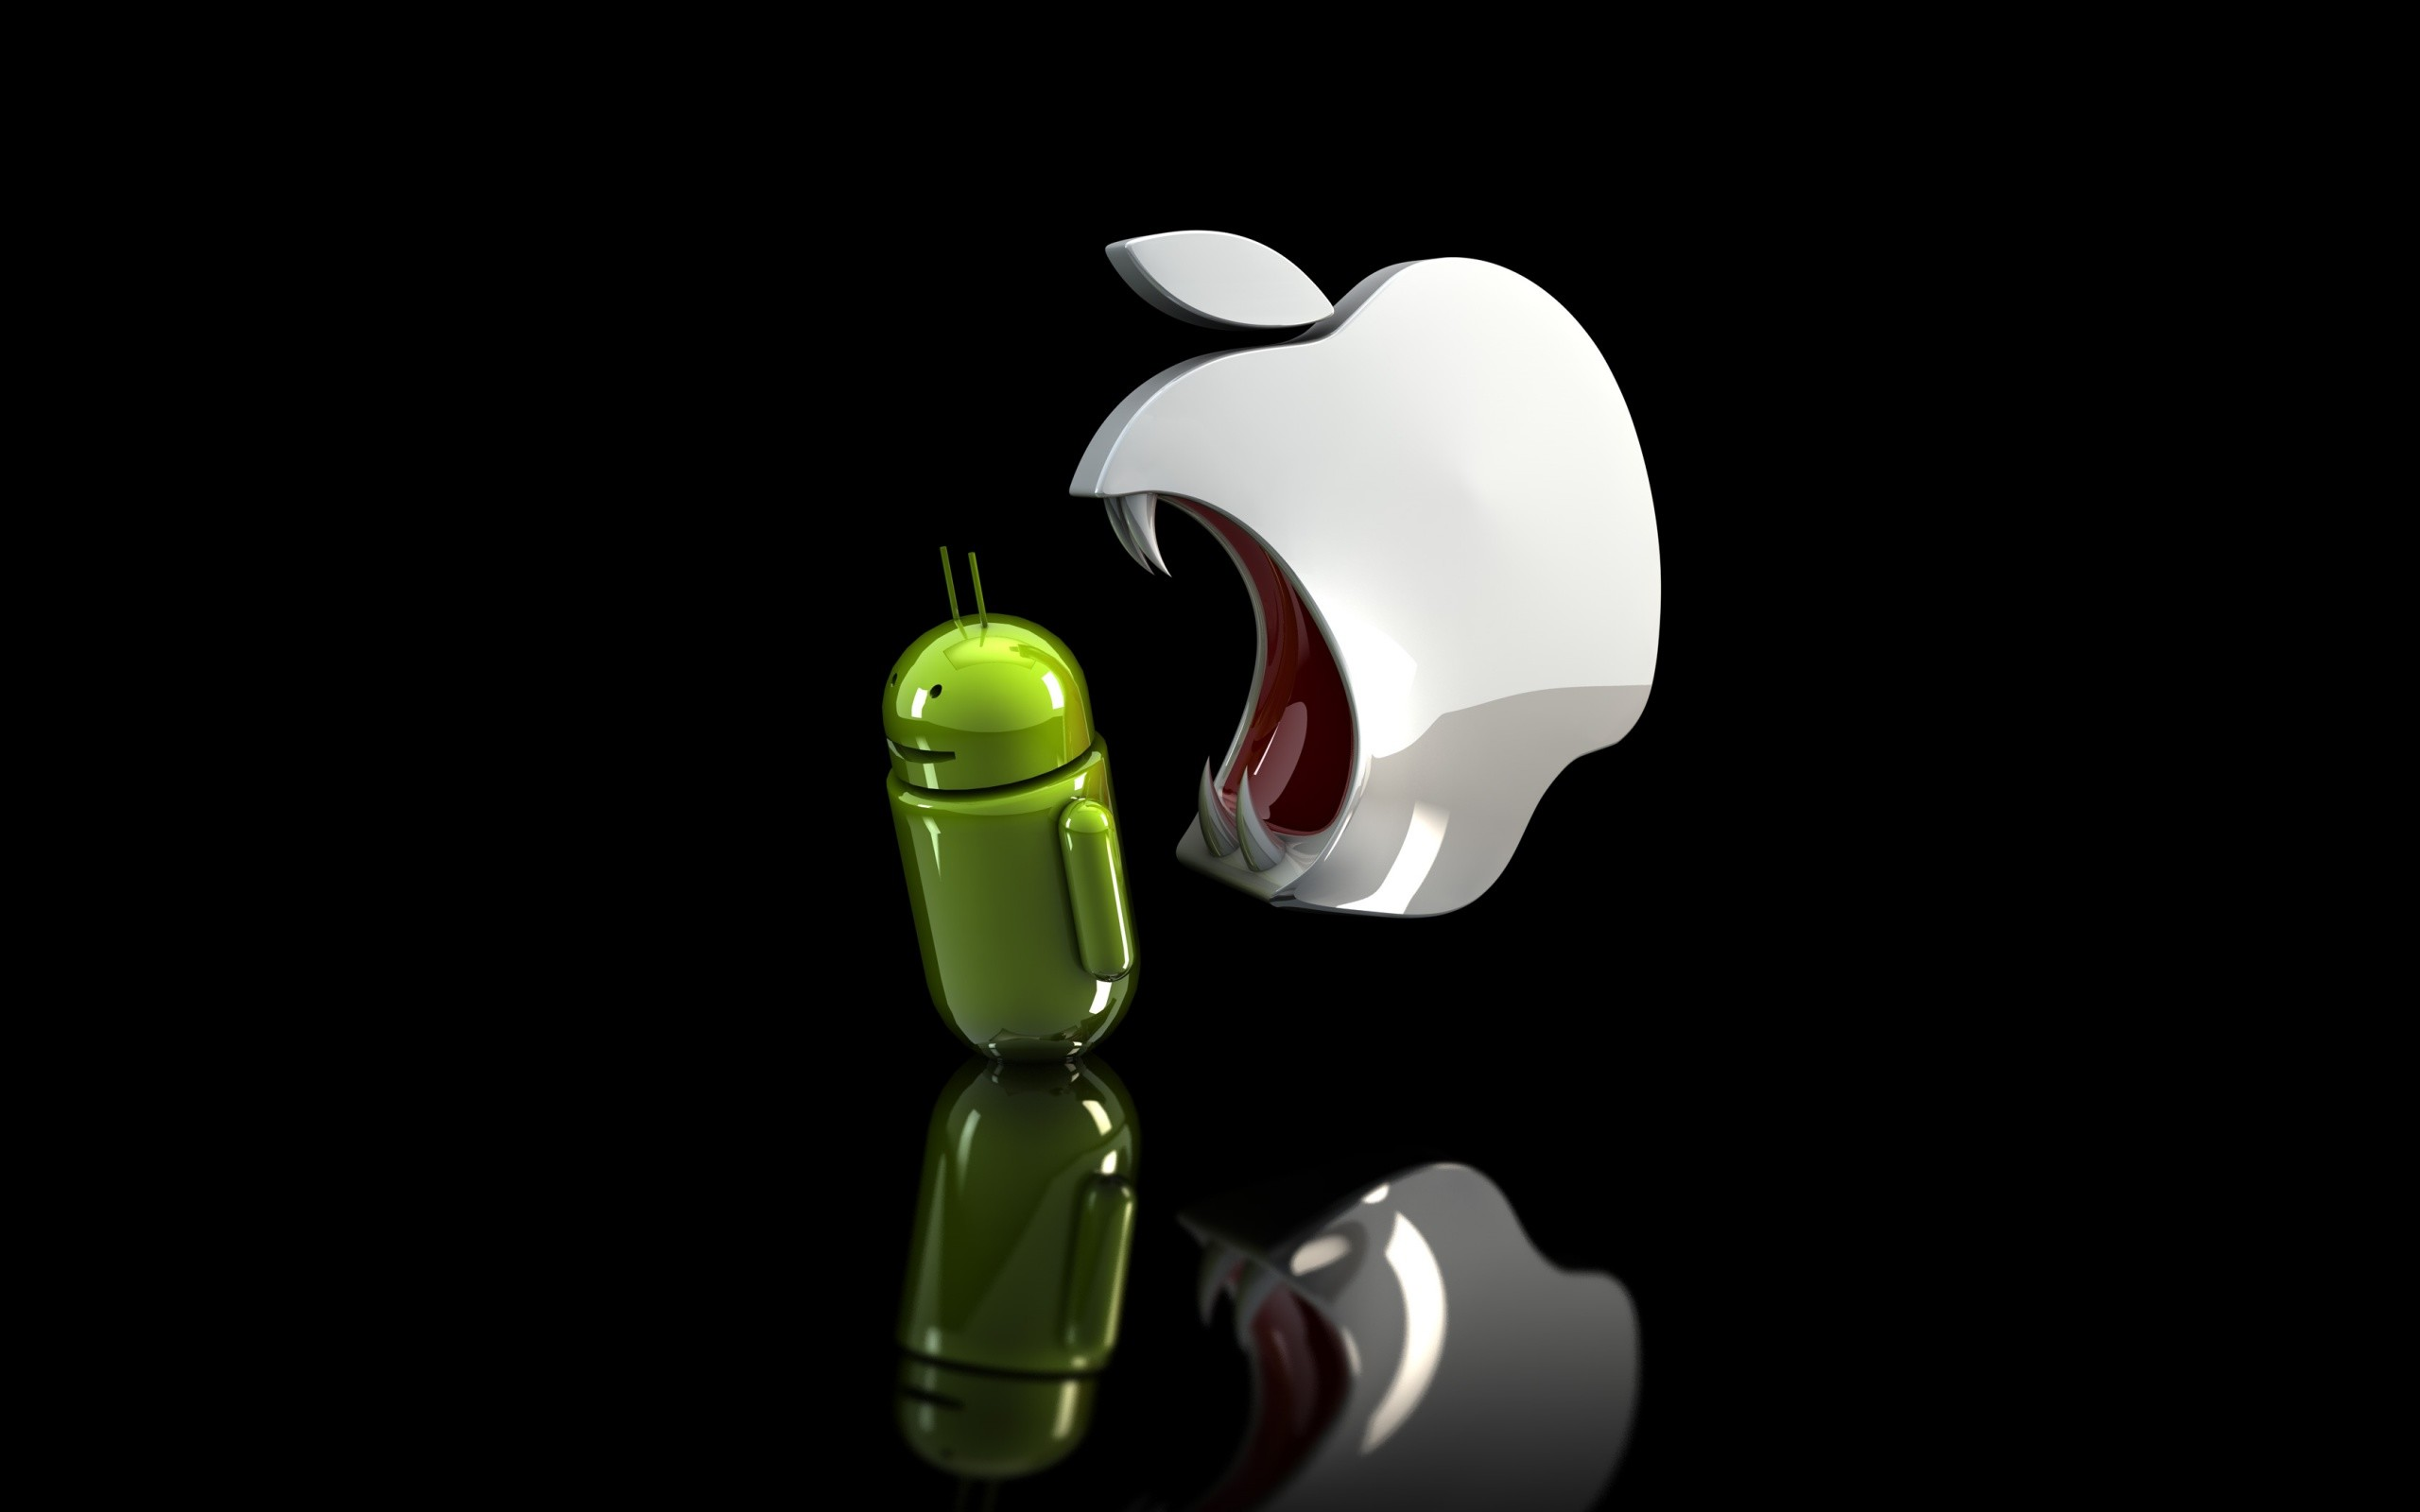 Cool Android Vs Apple Desktop HD Wallpaper 2560x1600